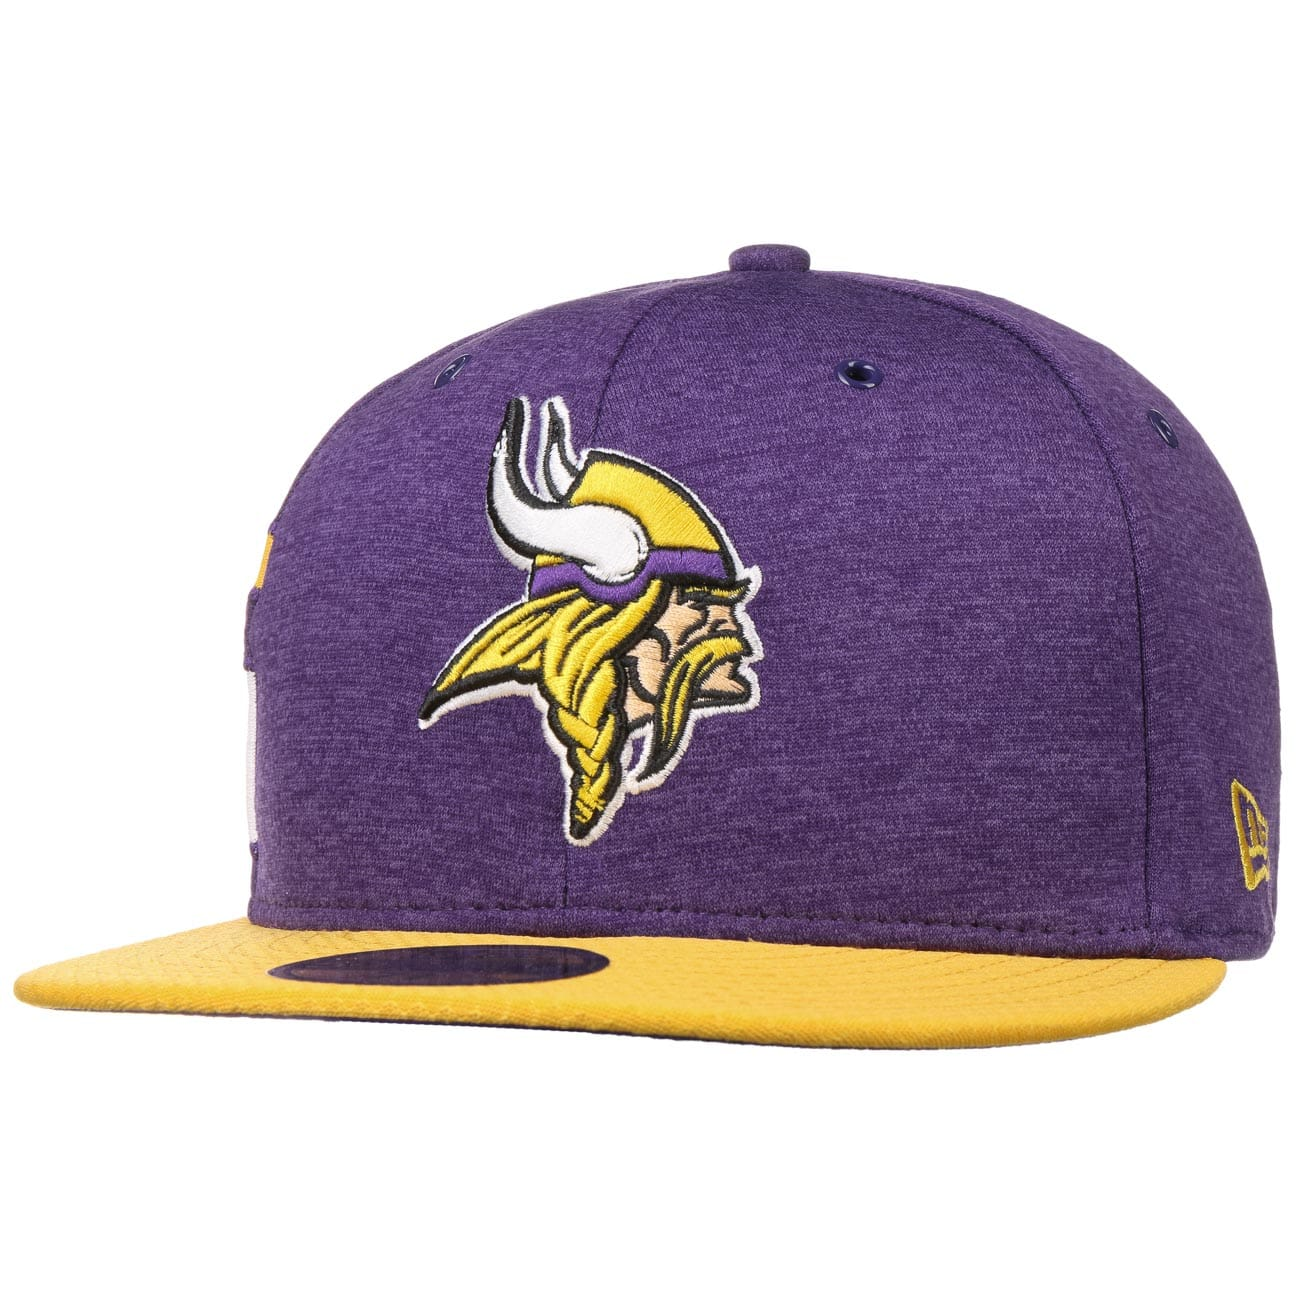 59fifty-on-field-18-vikings-cap-by-new-era-baseballcap